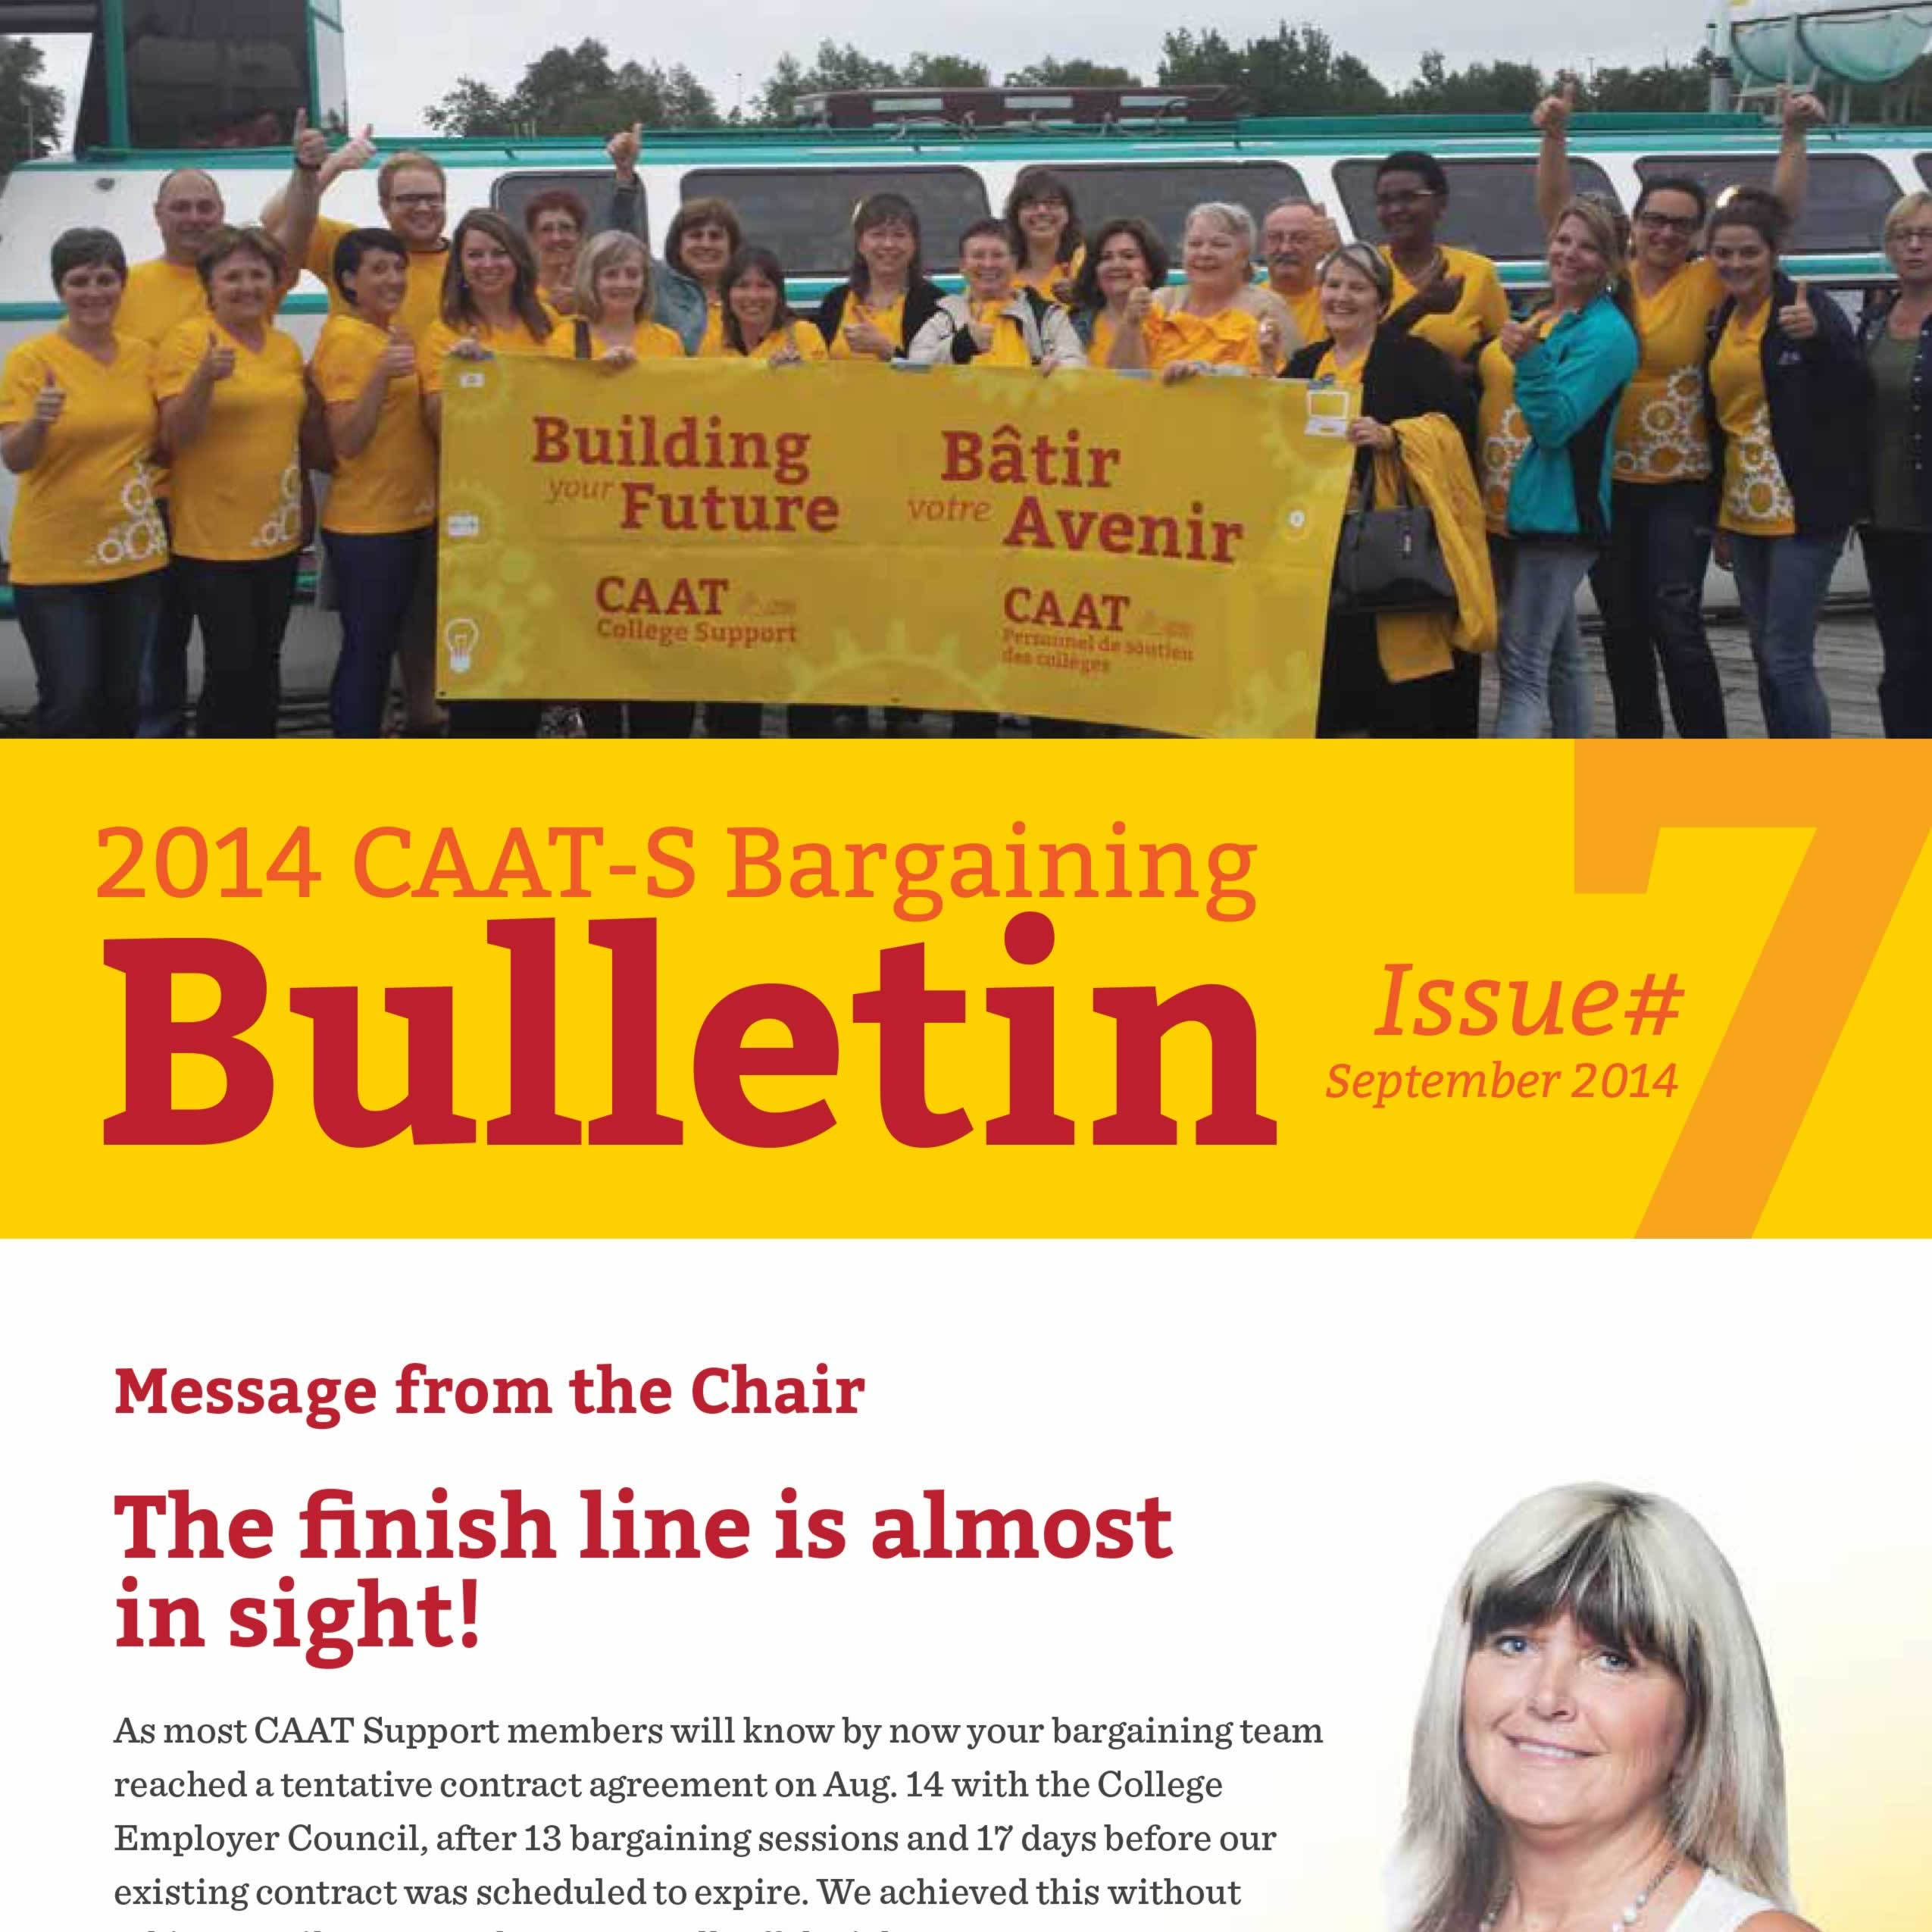 2014 CAAT-S Bargaining Bulletin Issue 7